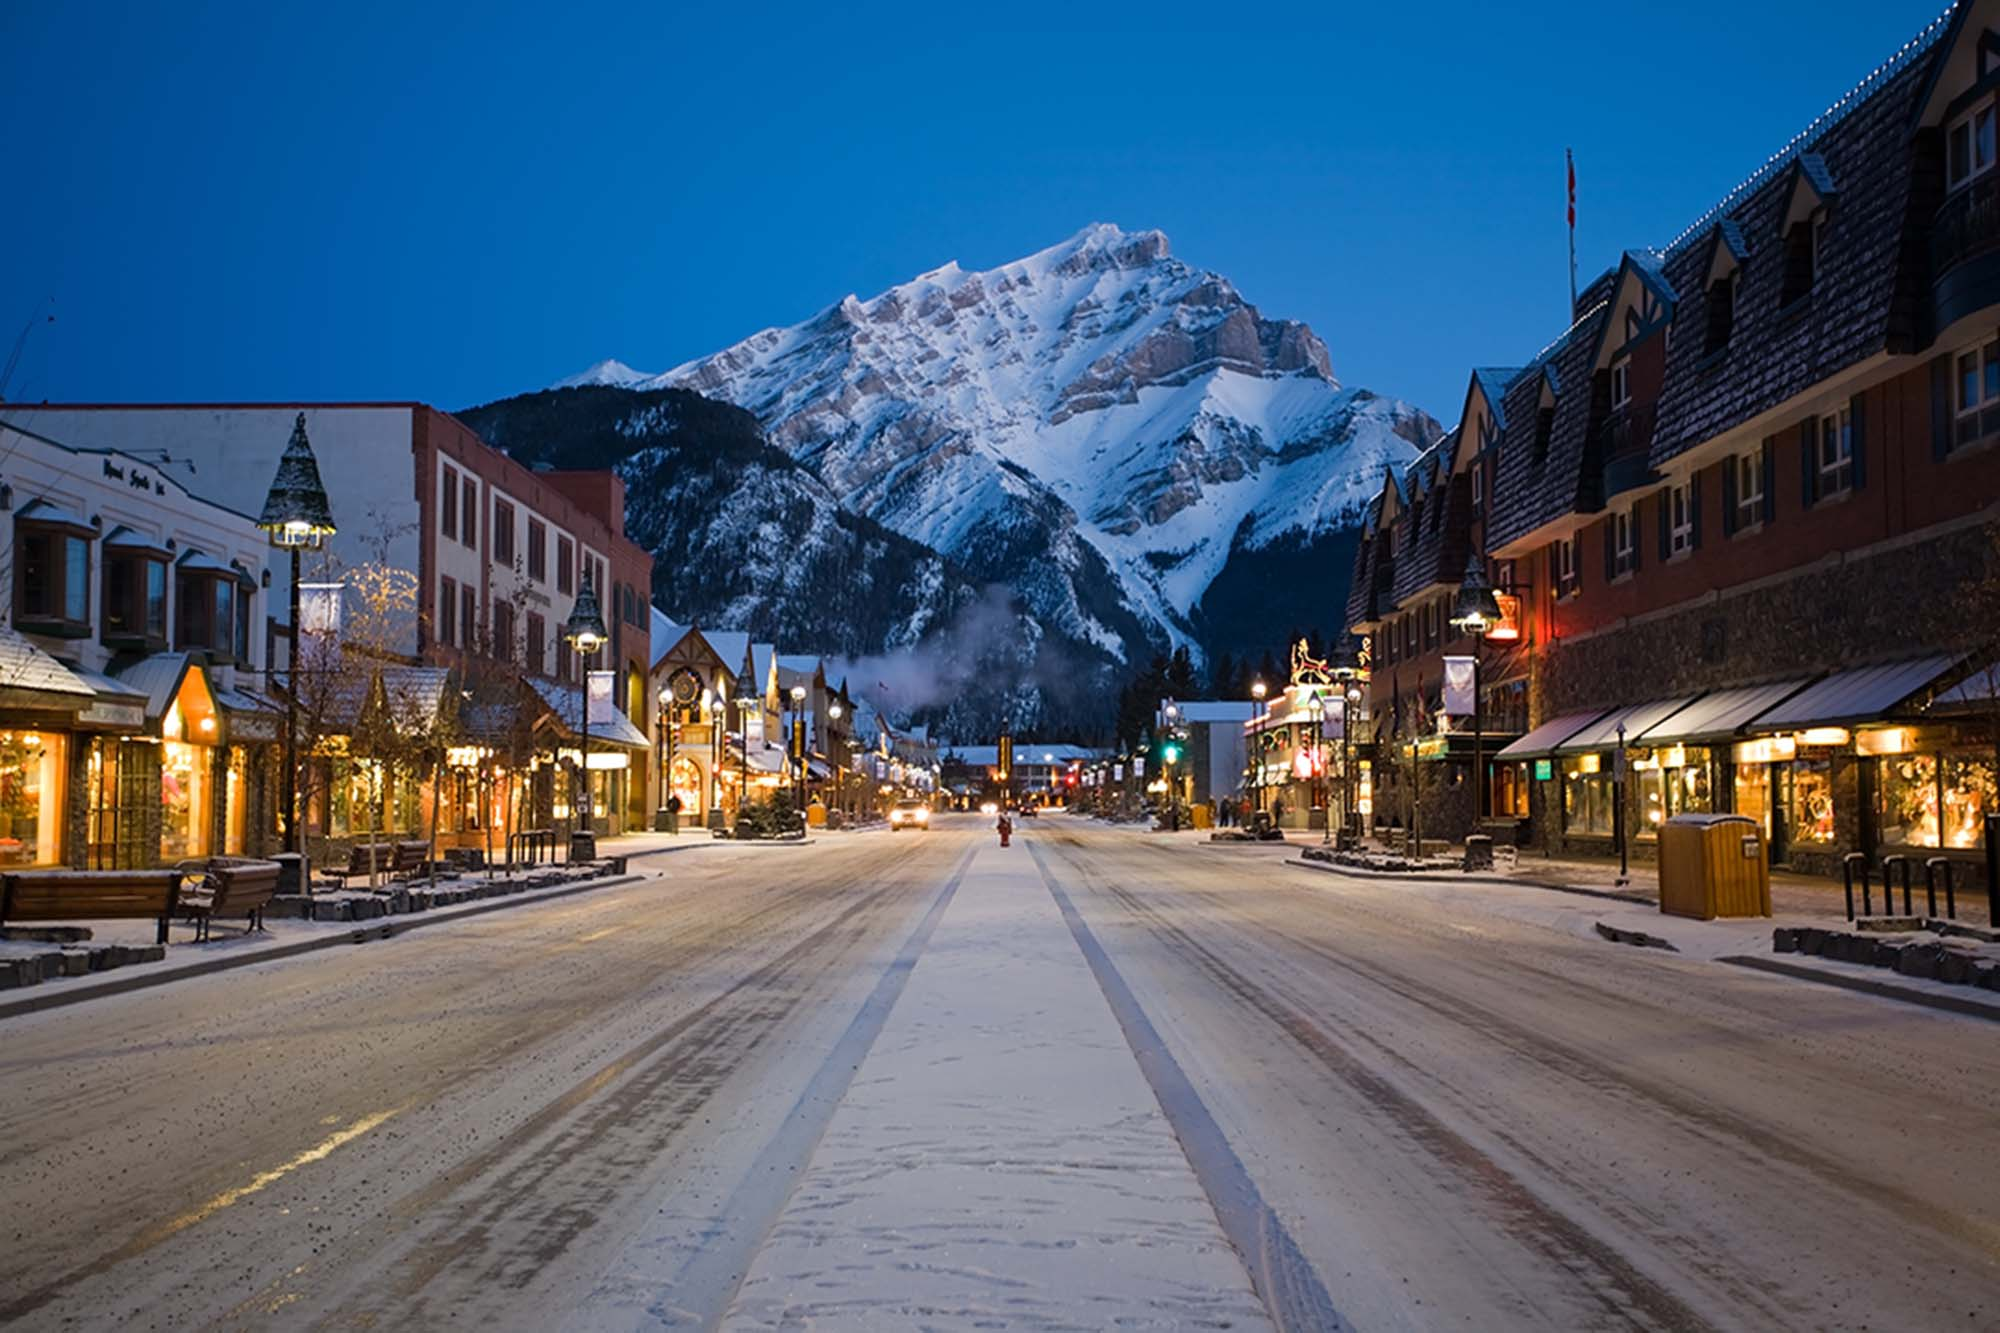 destination_signature_banff_avenue_nightime_winter_paul_zizka_11_horizontal.jpg